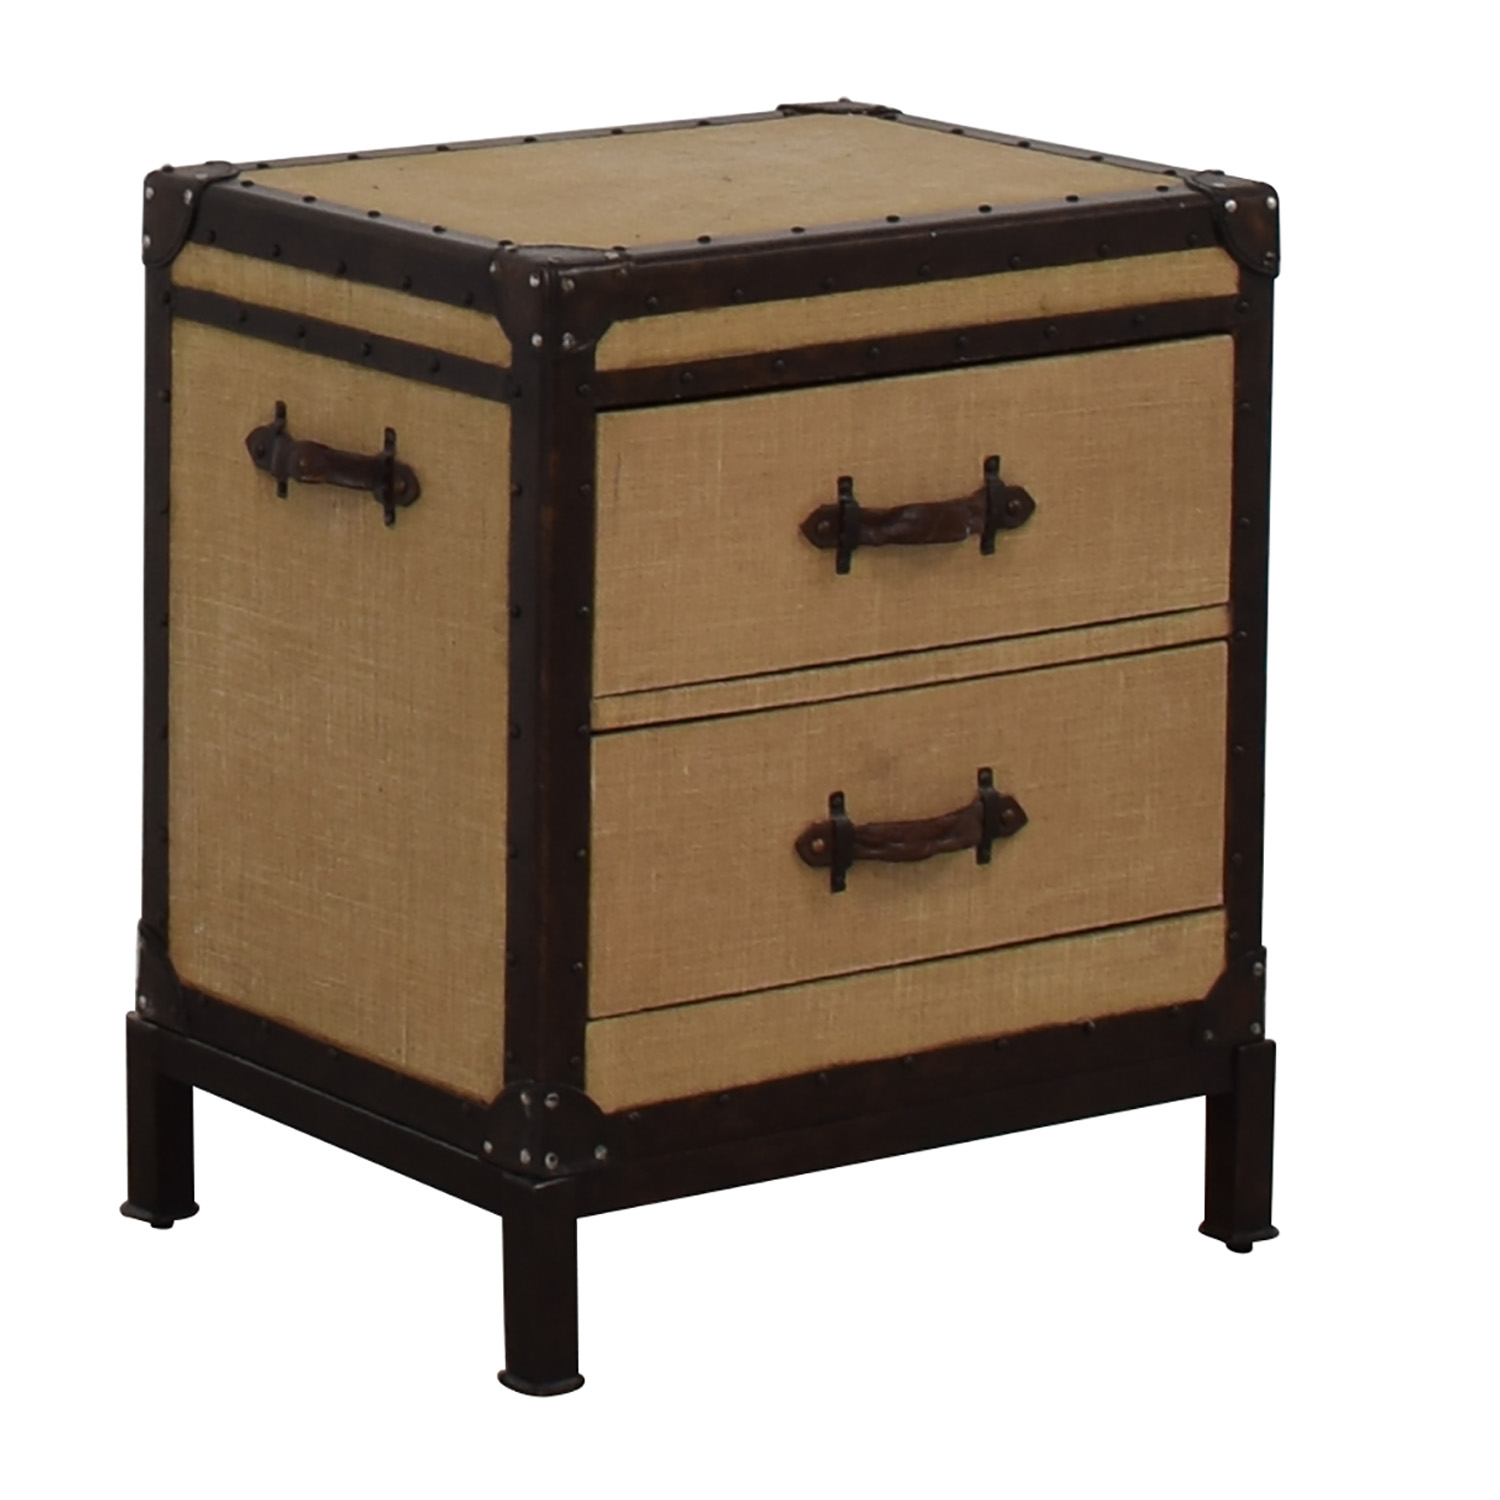 huge selection of 6e622 396e3 77% OFF - Pottery Barn Pottery Barn Redford Tan Two-Drawer Trunk Nightstand  / Tables